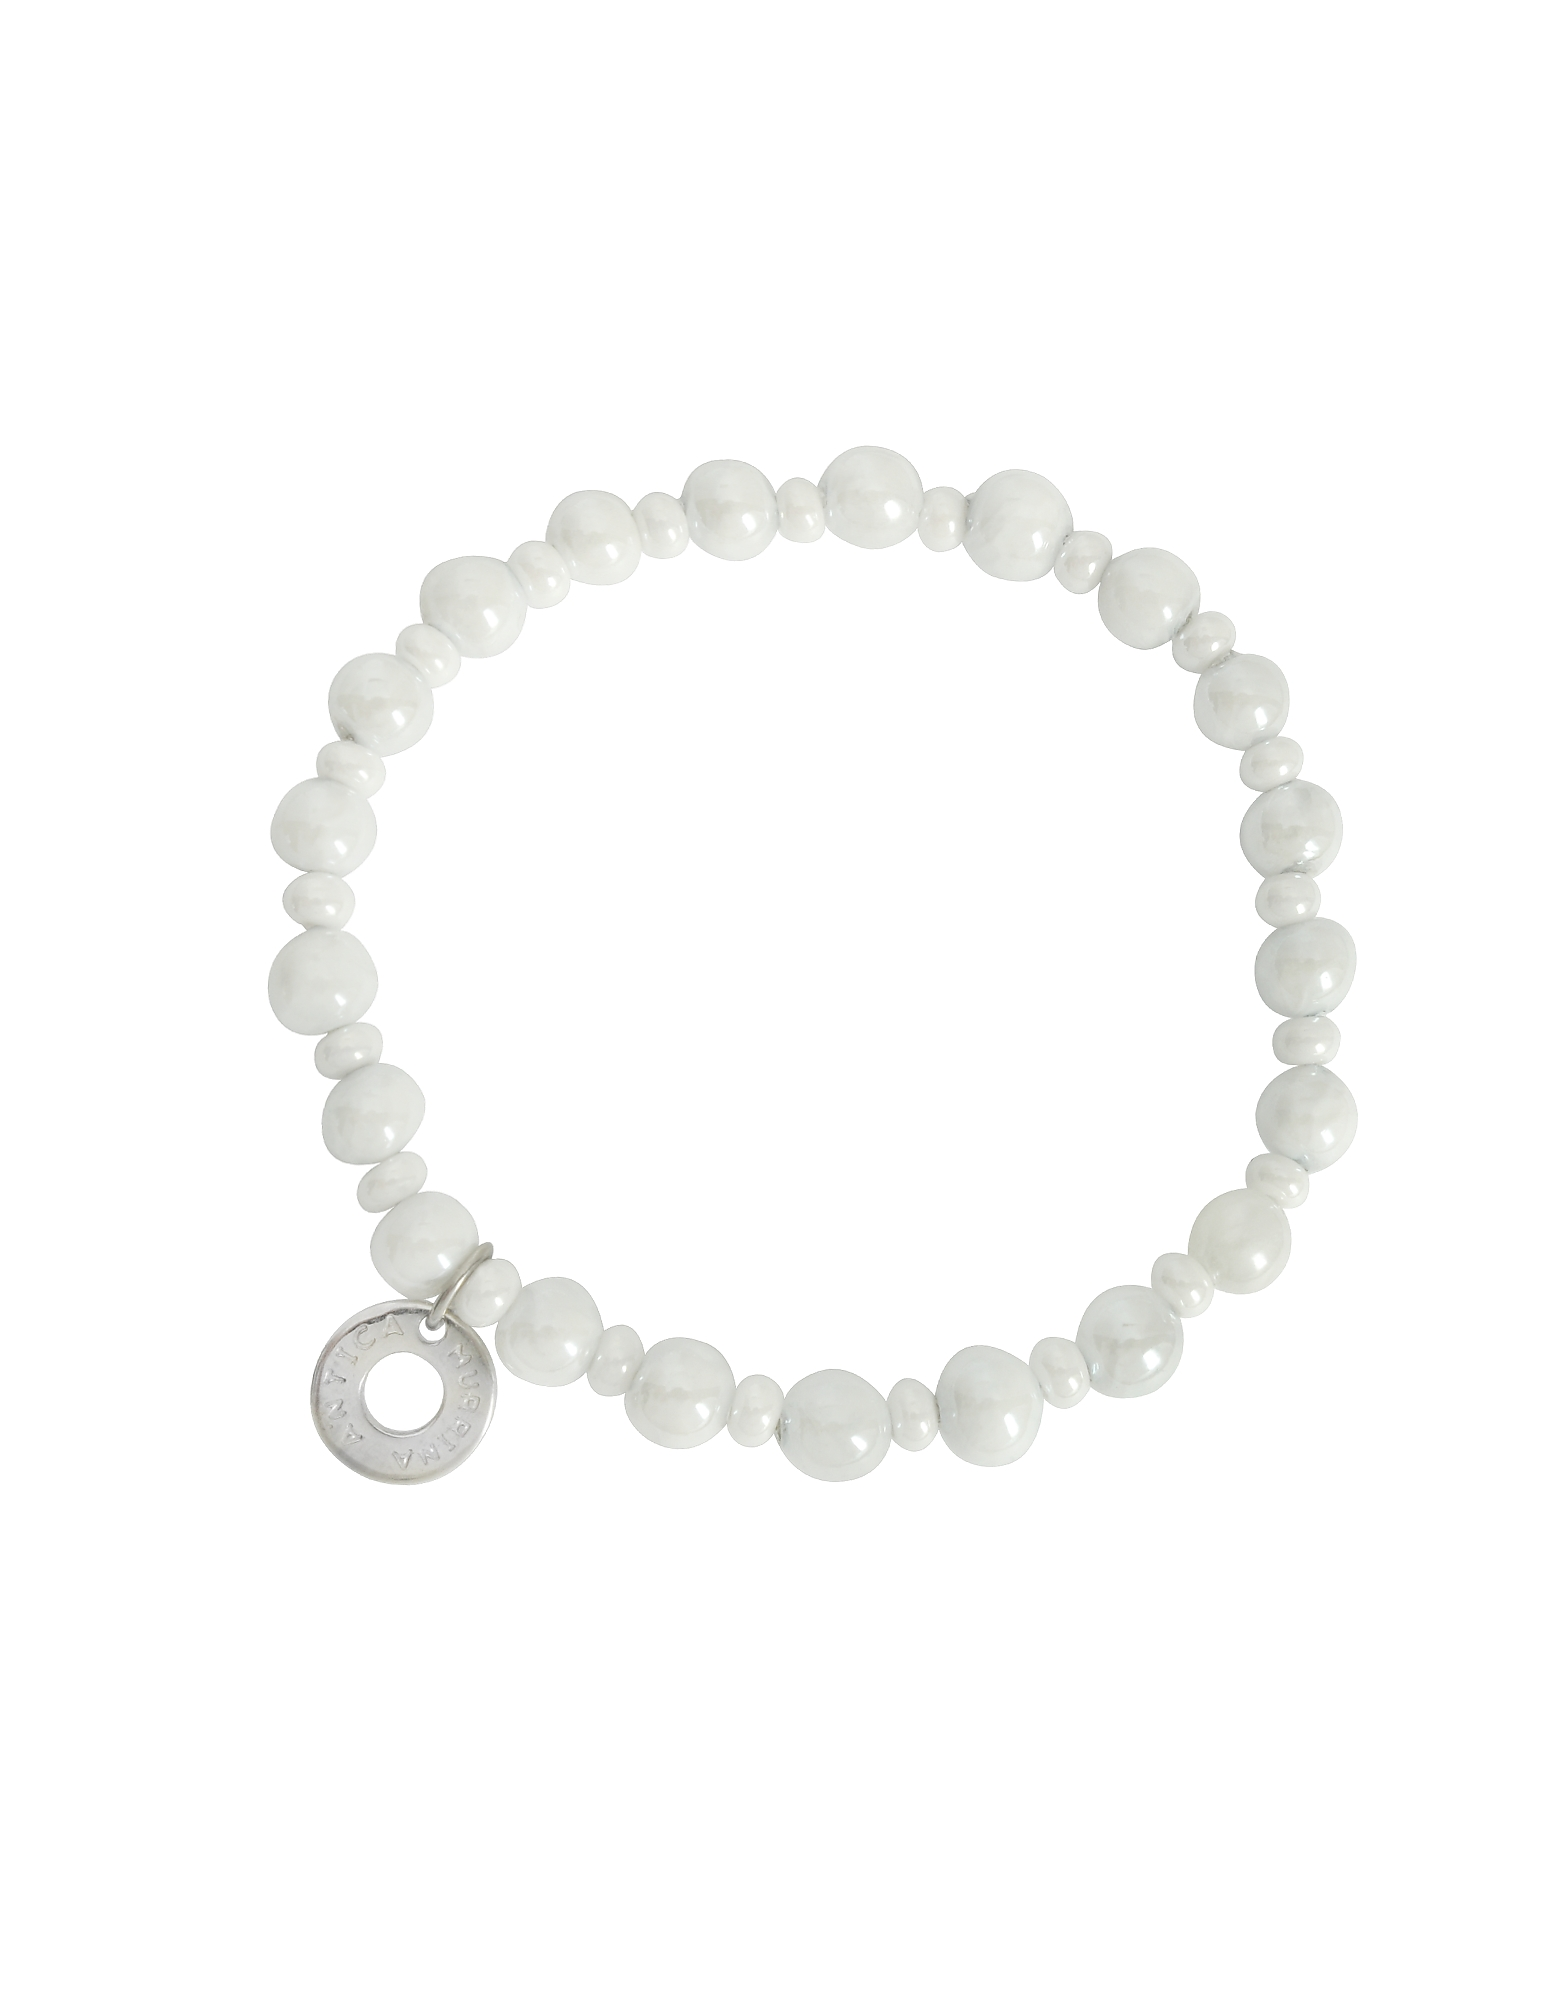 Antica Murrina Bracelets, Perleadi White Murano Glass Beads Bracelet